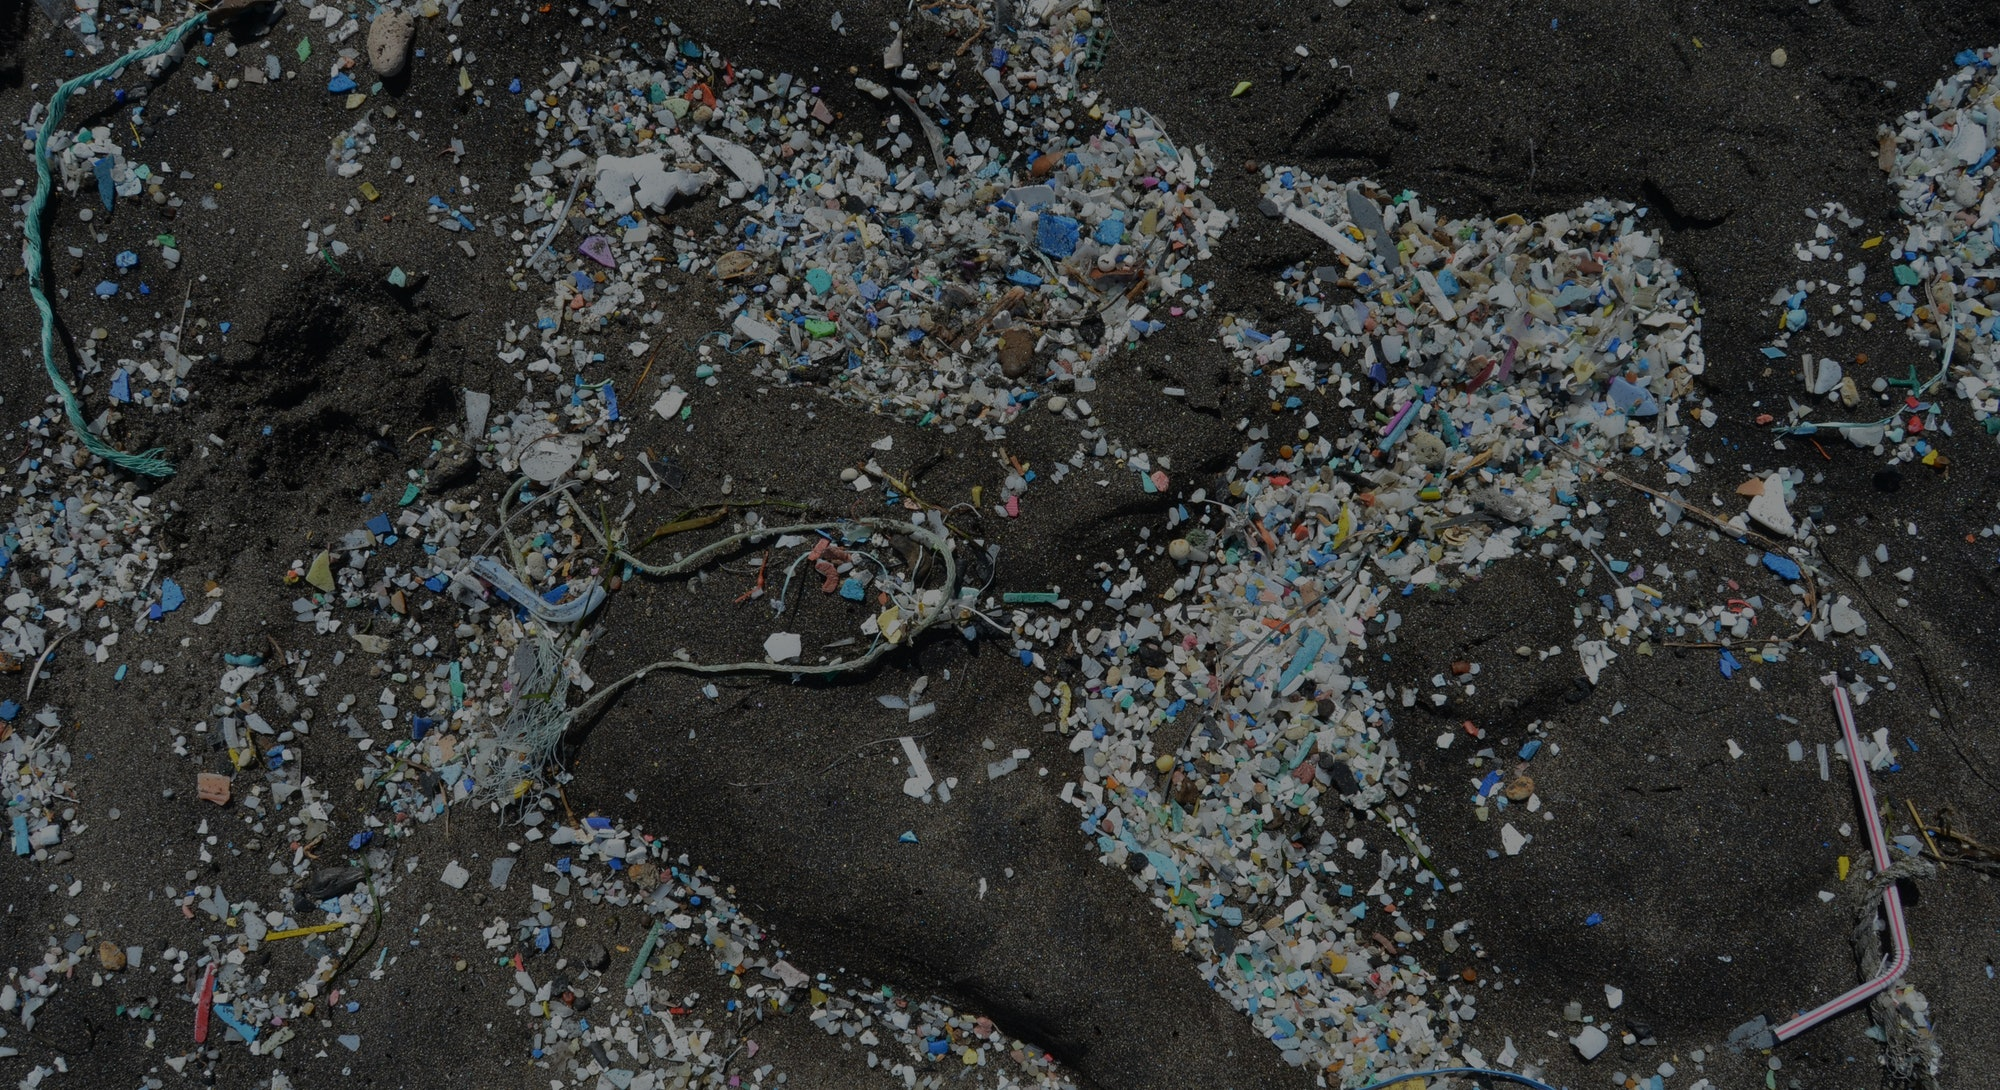 plastics and microplastics in sand on beaches and coasts of the Canary Islands